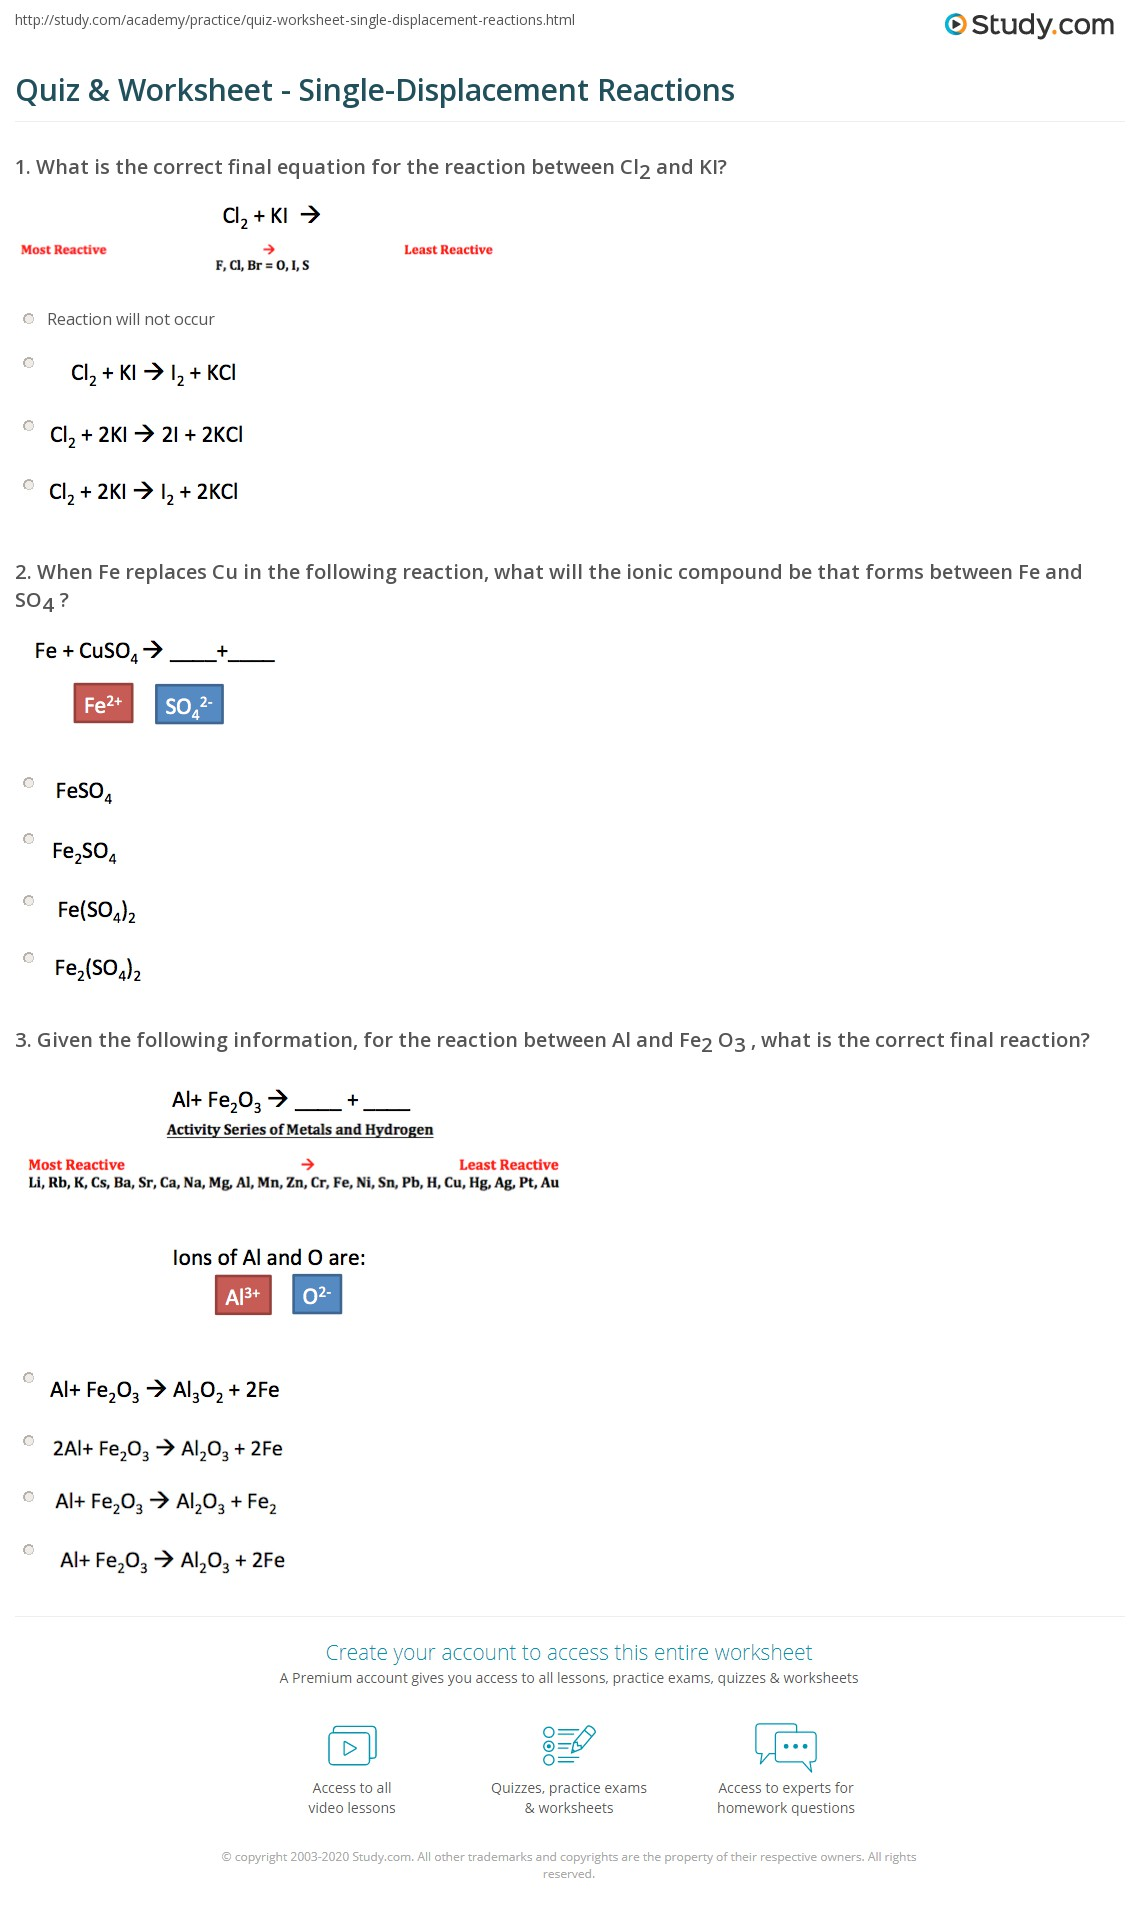 Quiz Worksheet Single Displacement Reactions Study Com